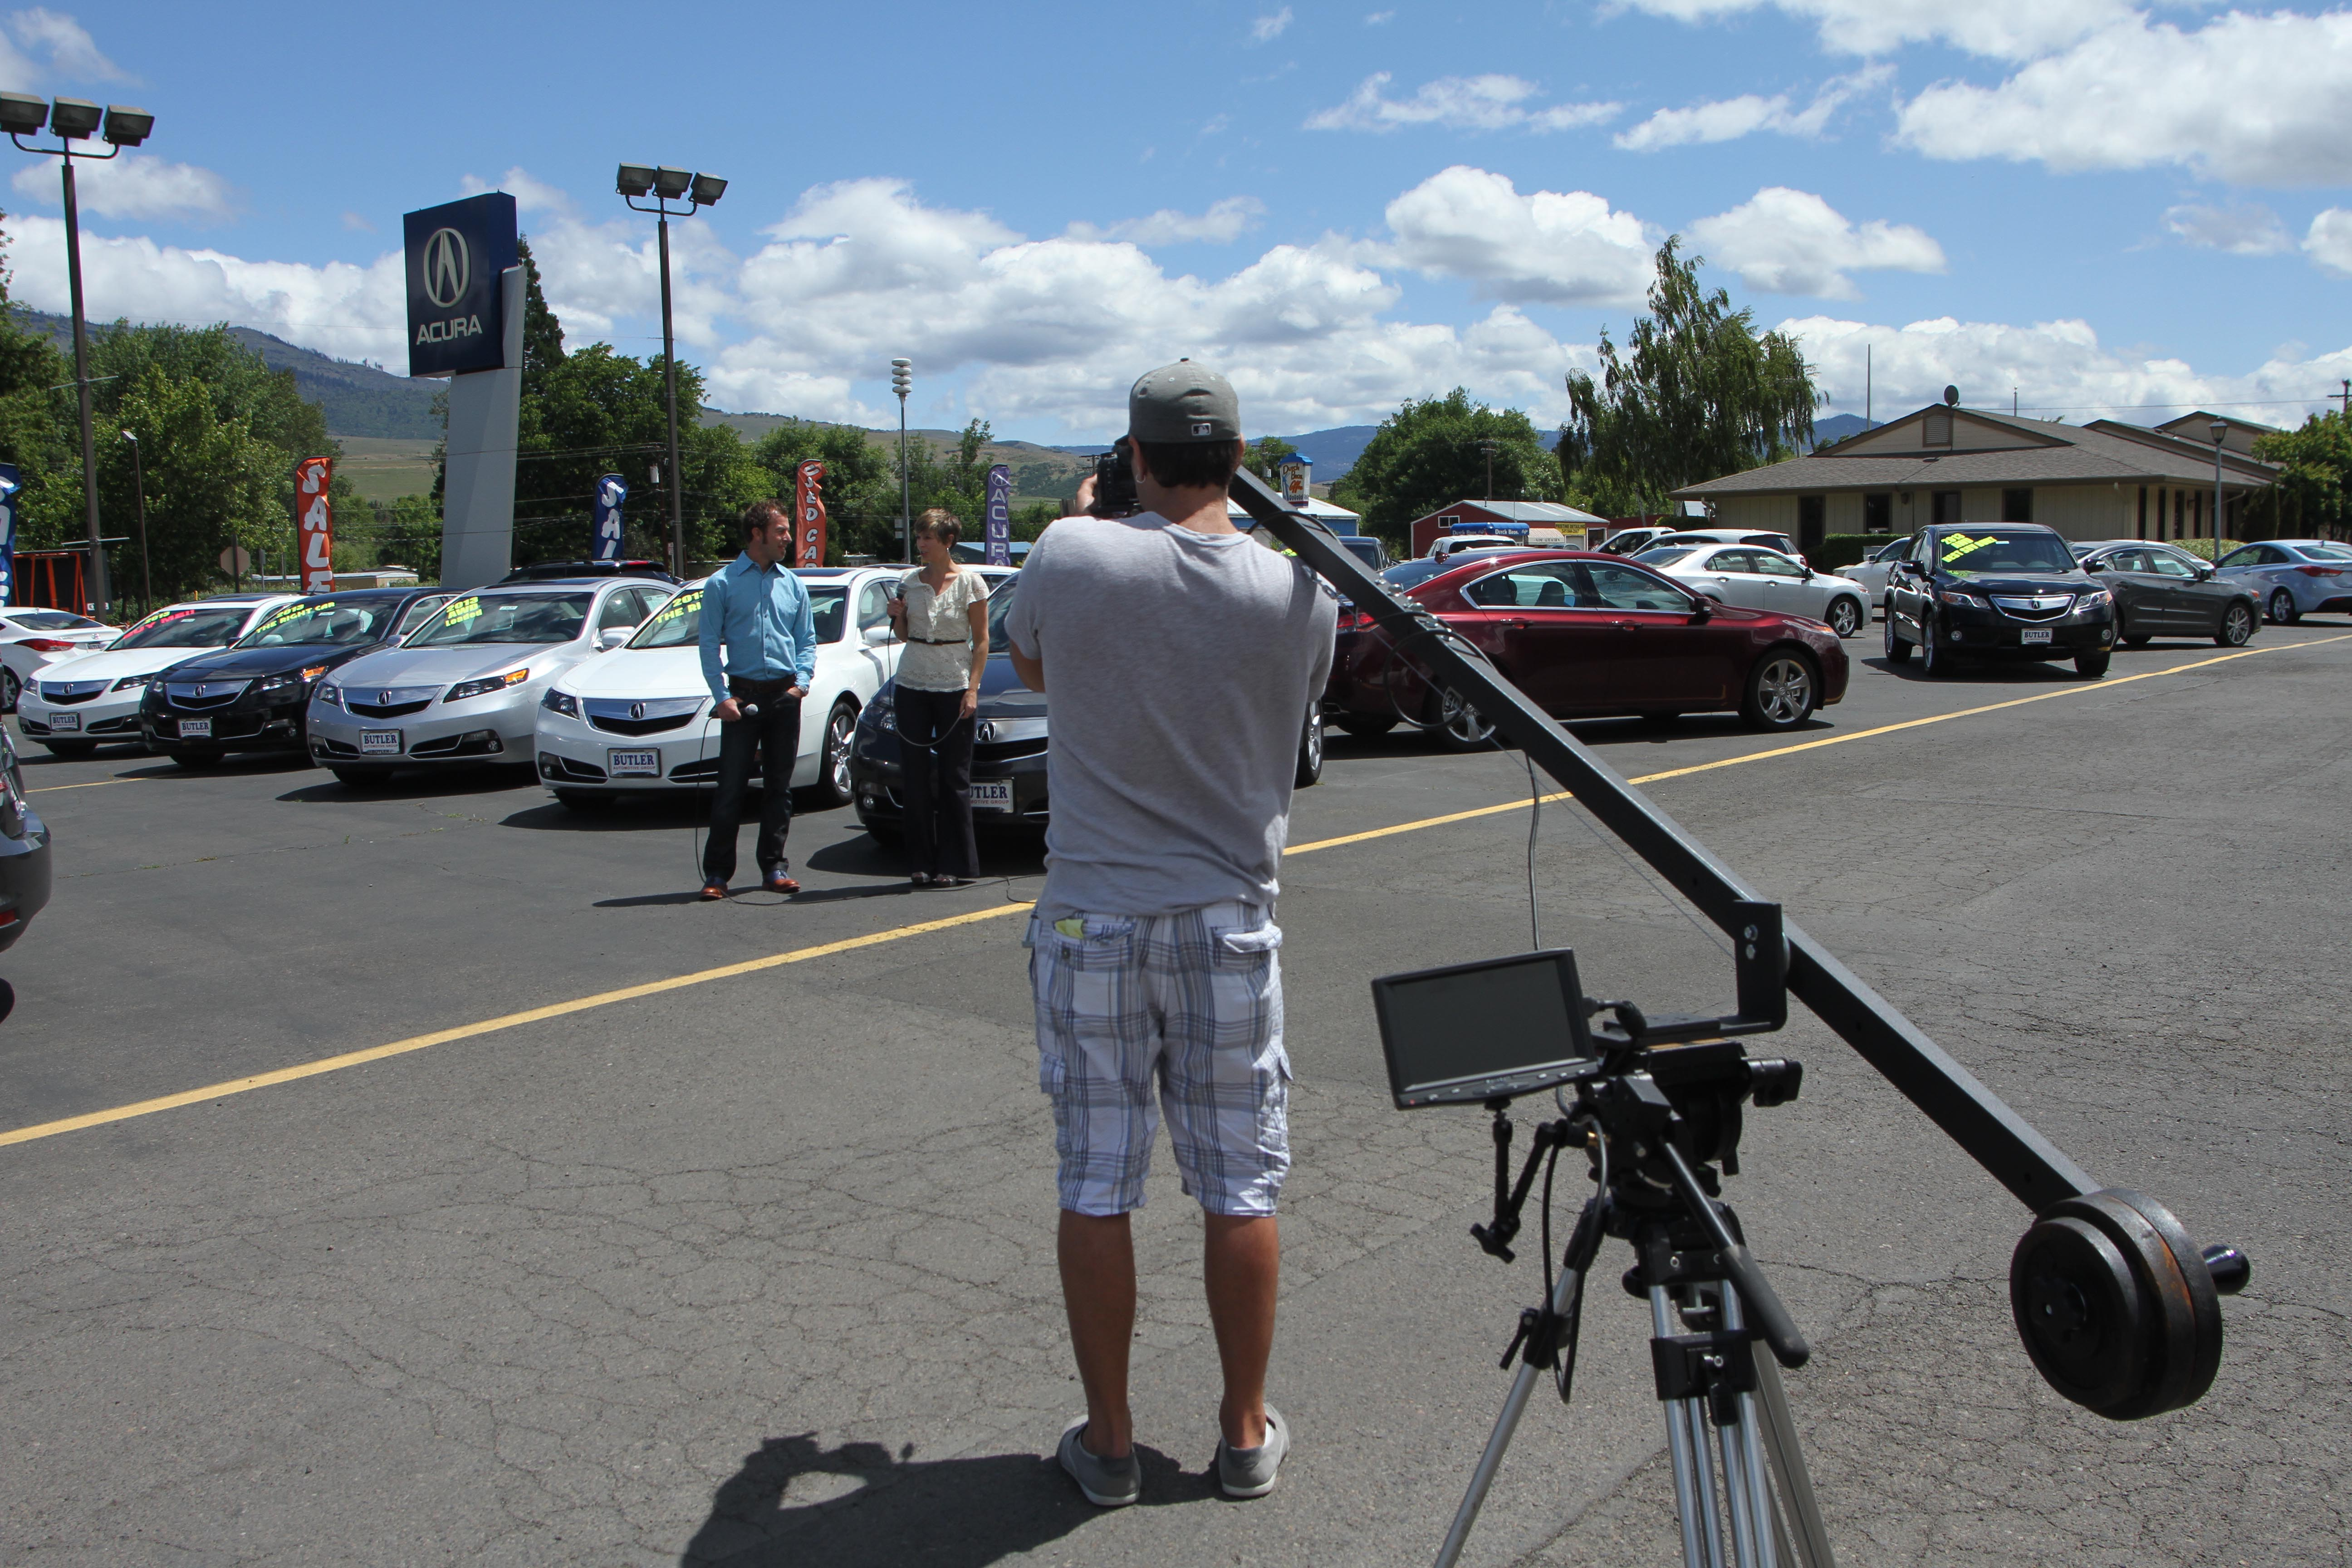 Behind the scenes of the Statewide Sale commercial shoot